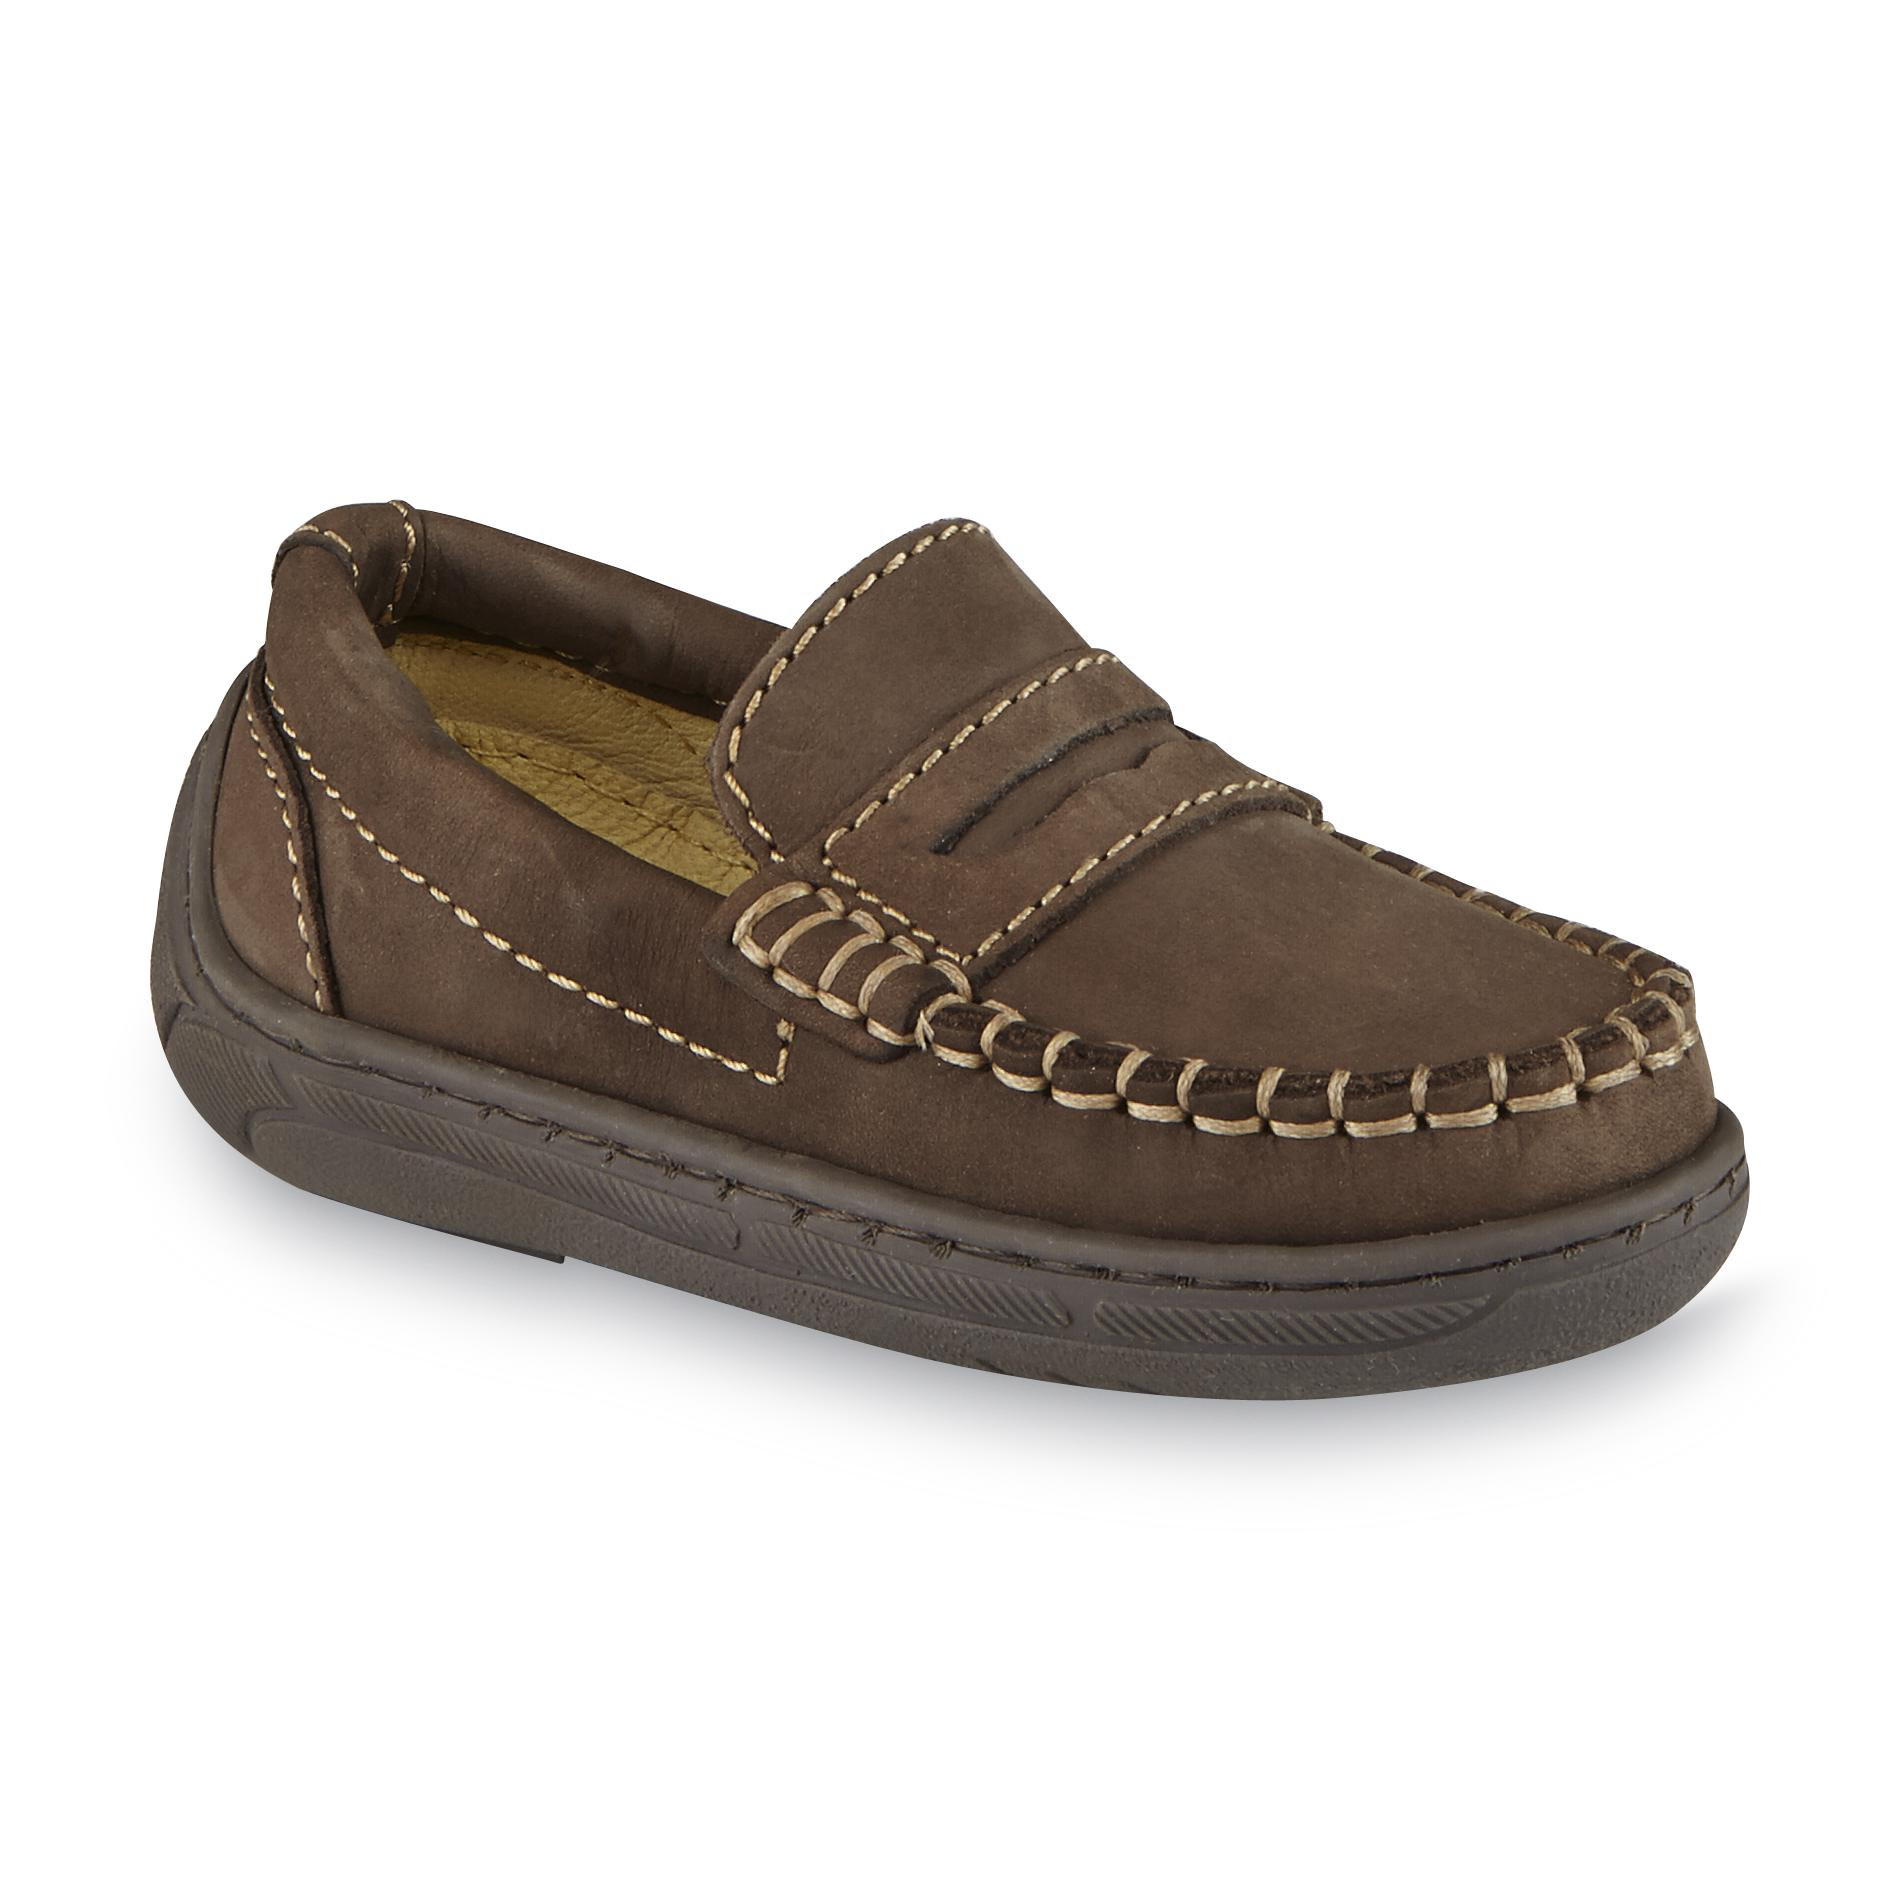 Primigi Toddler Boy's Choate Leather Penny Loafer - Brown